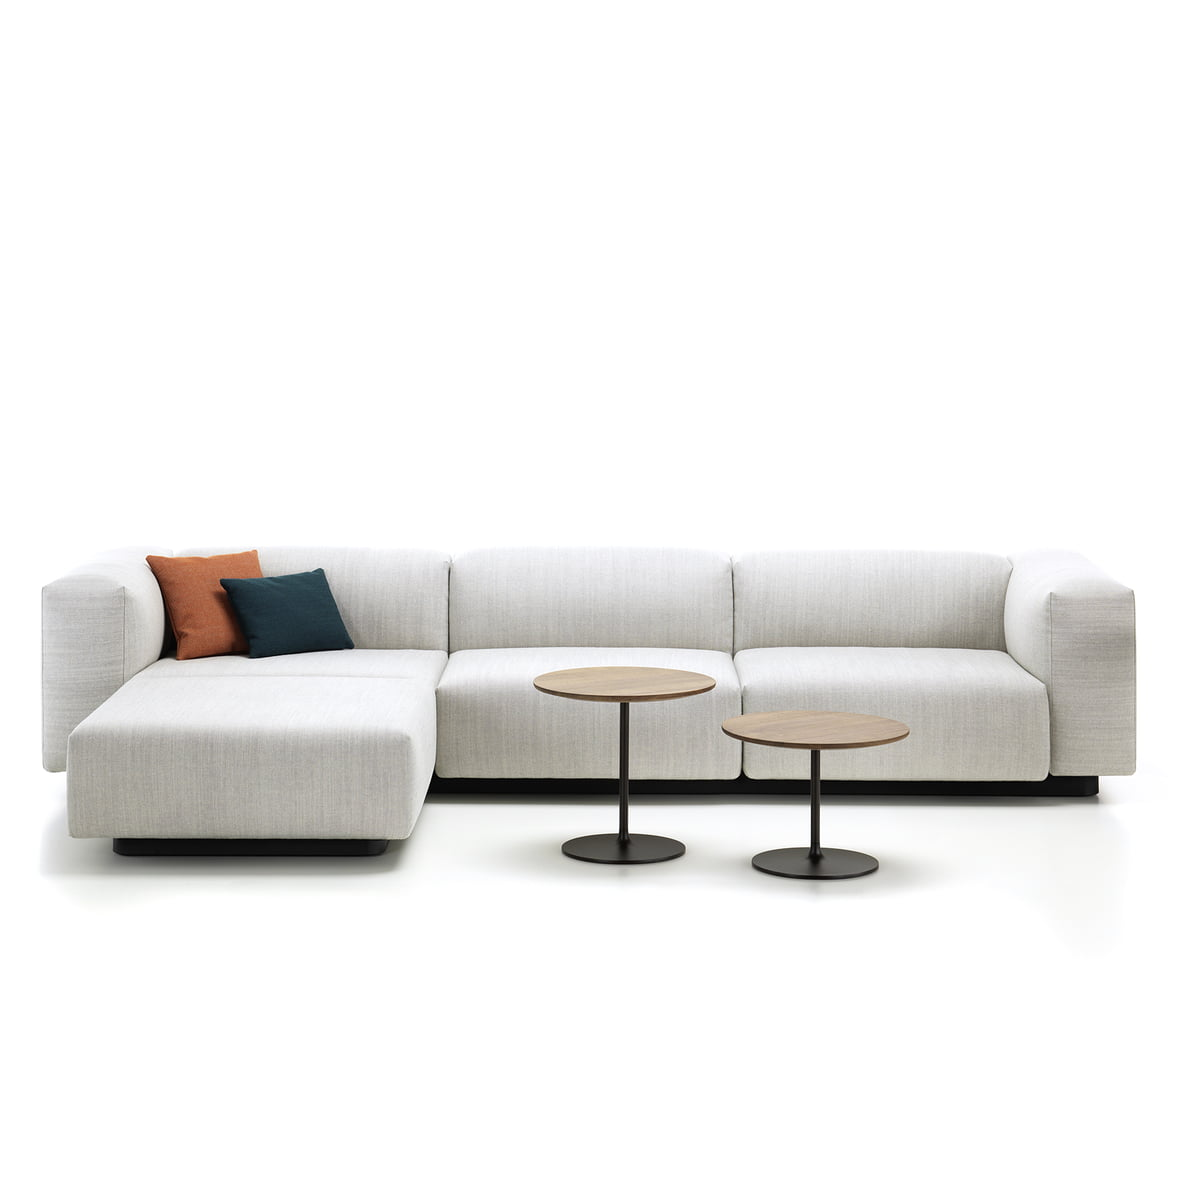 buy the soft modular corner sofa from vitra. Black Bedroom Furniture Sets. Home Design Ideas